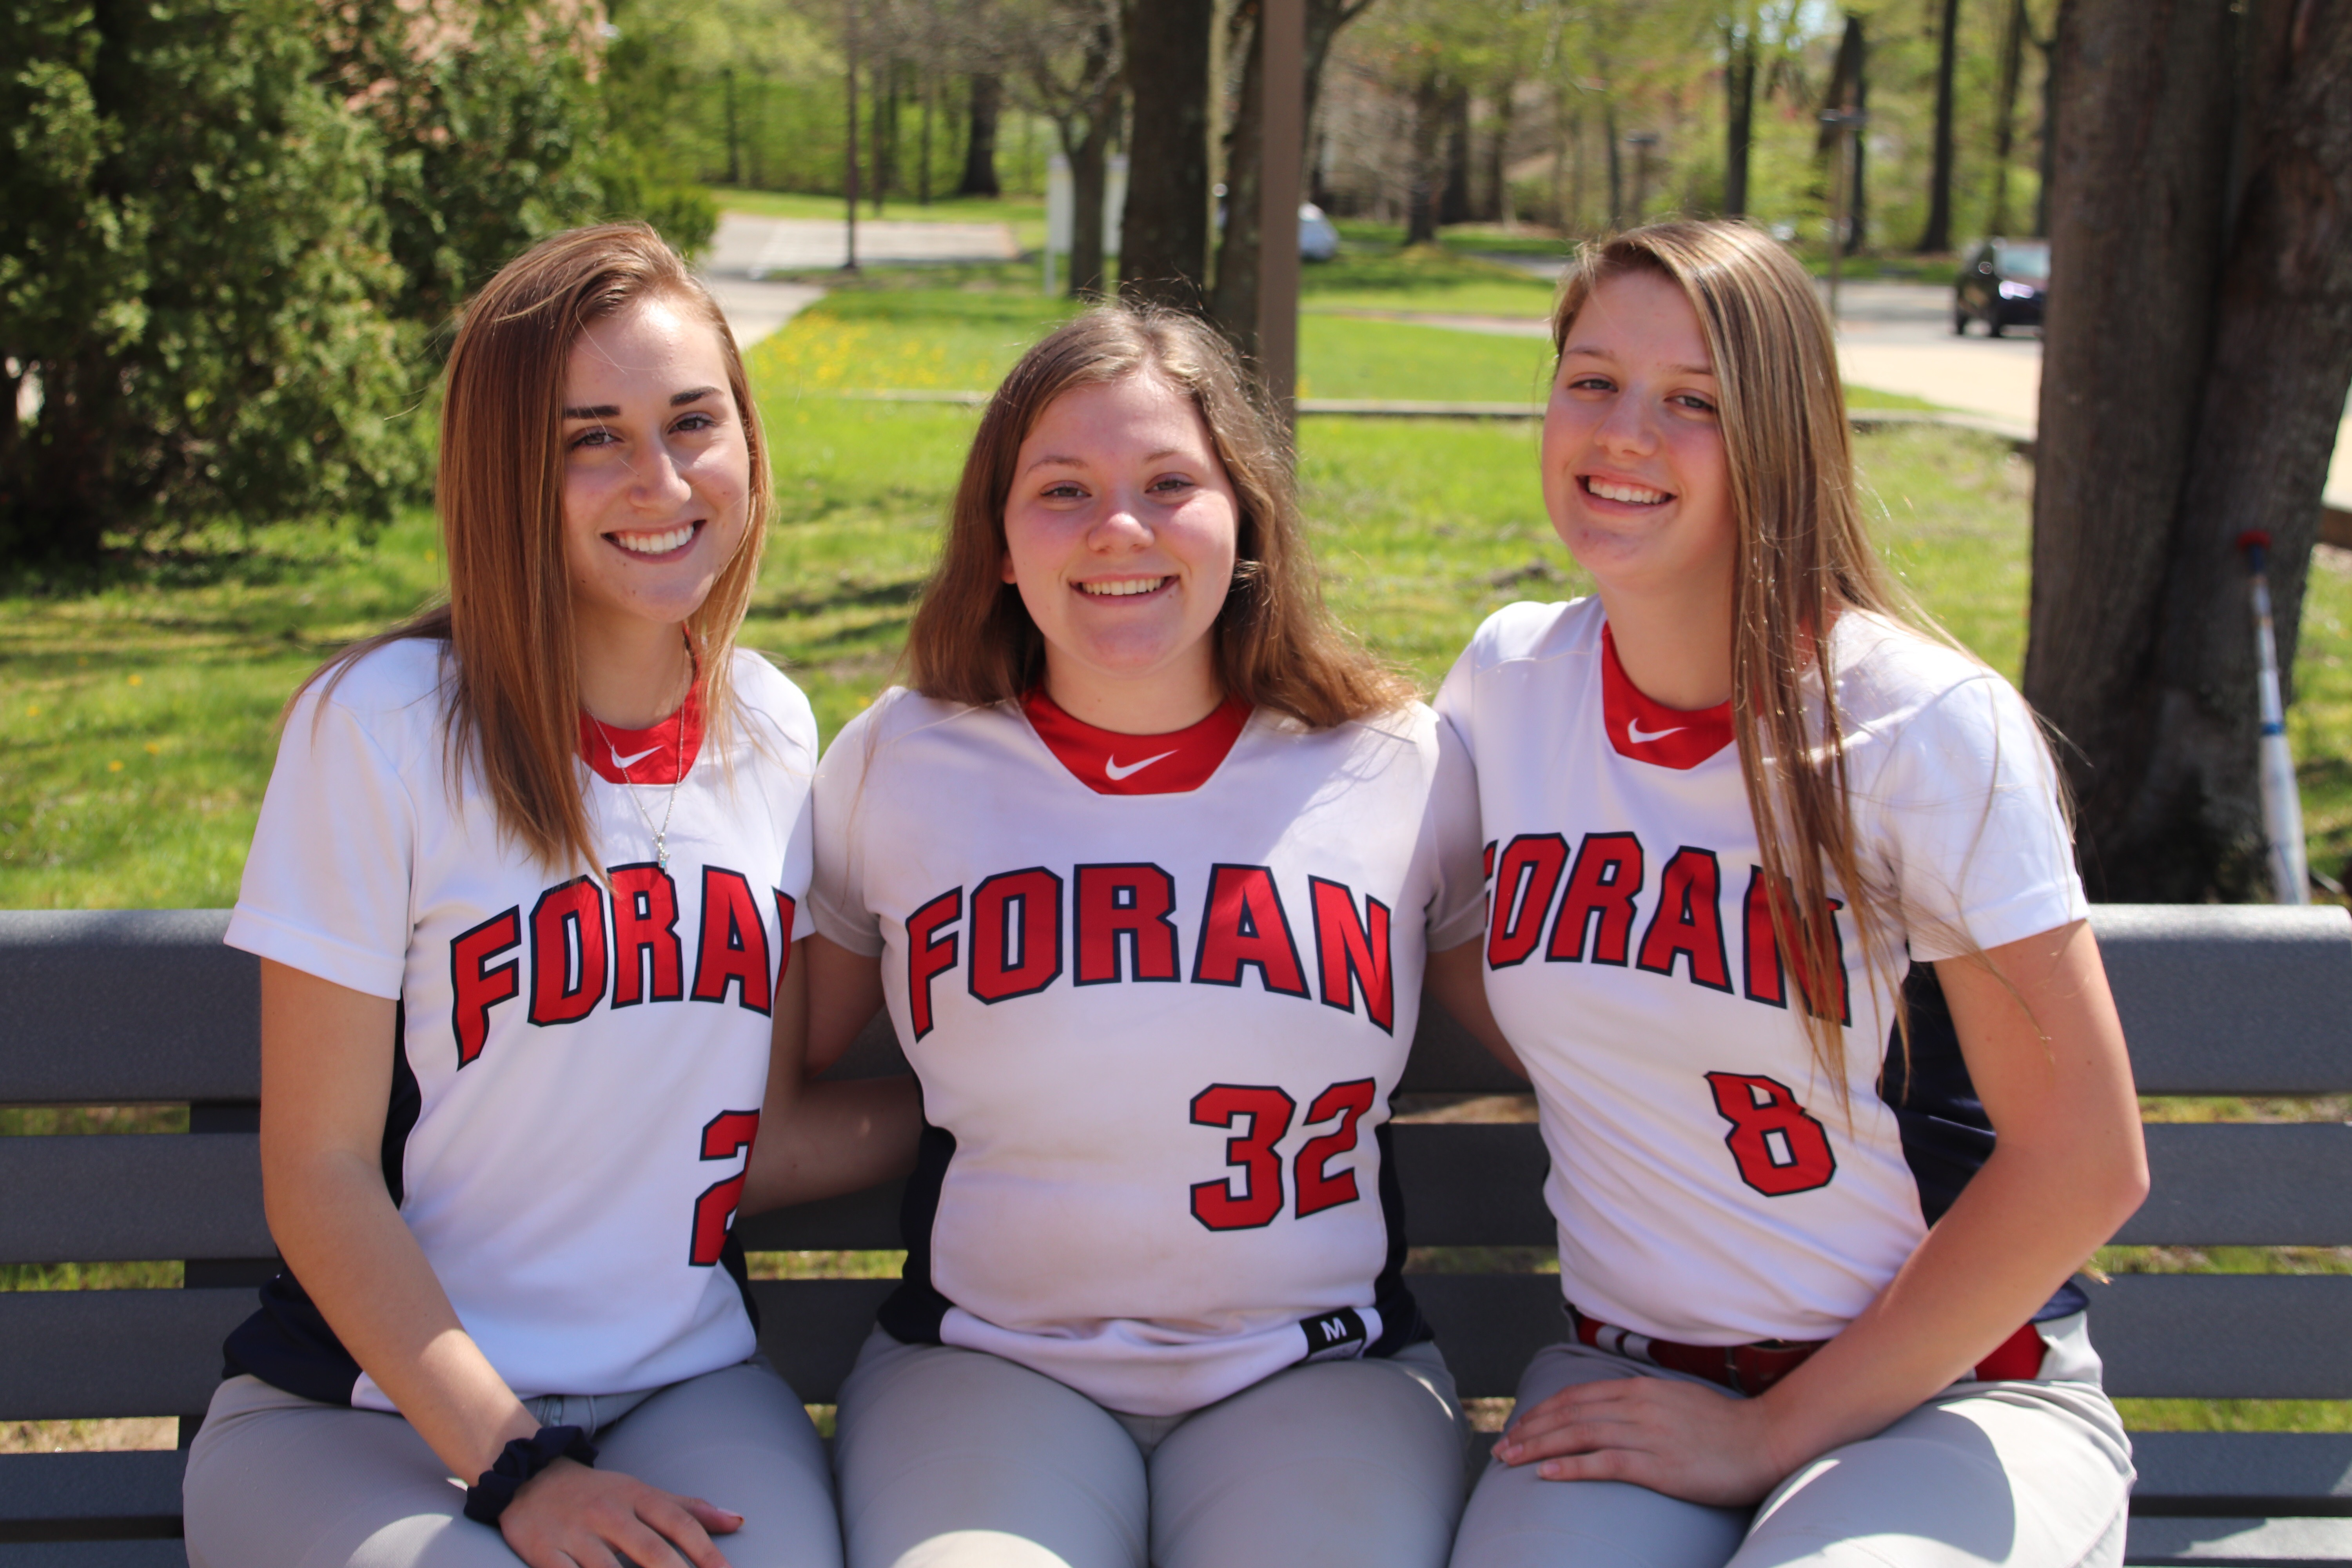 Seniors Makenna Prete, Hailey Laforte, and Kailey Loewenberg on the foran softball team that left behind their tips for underclassmen.